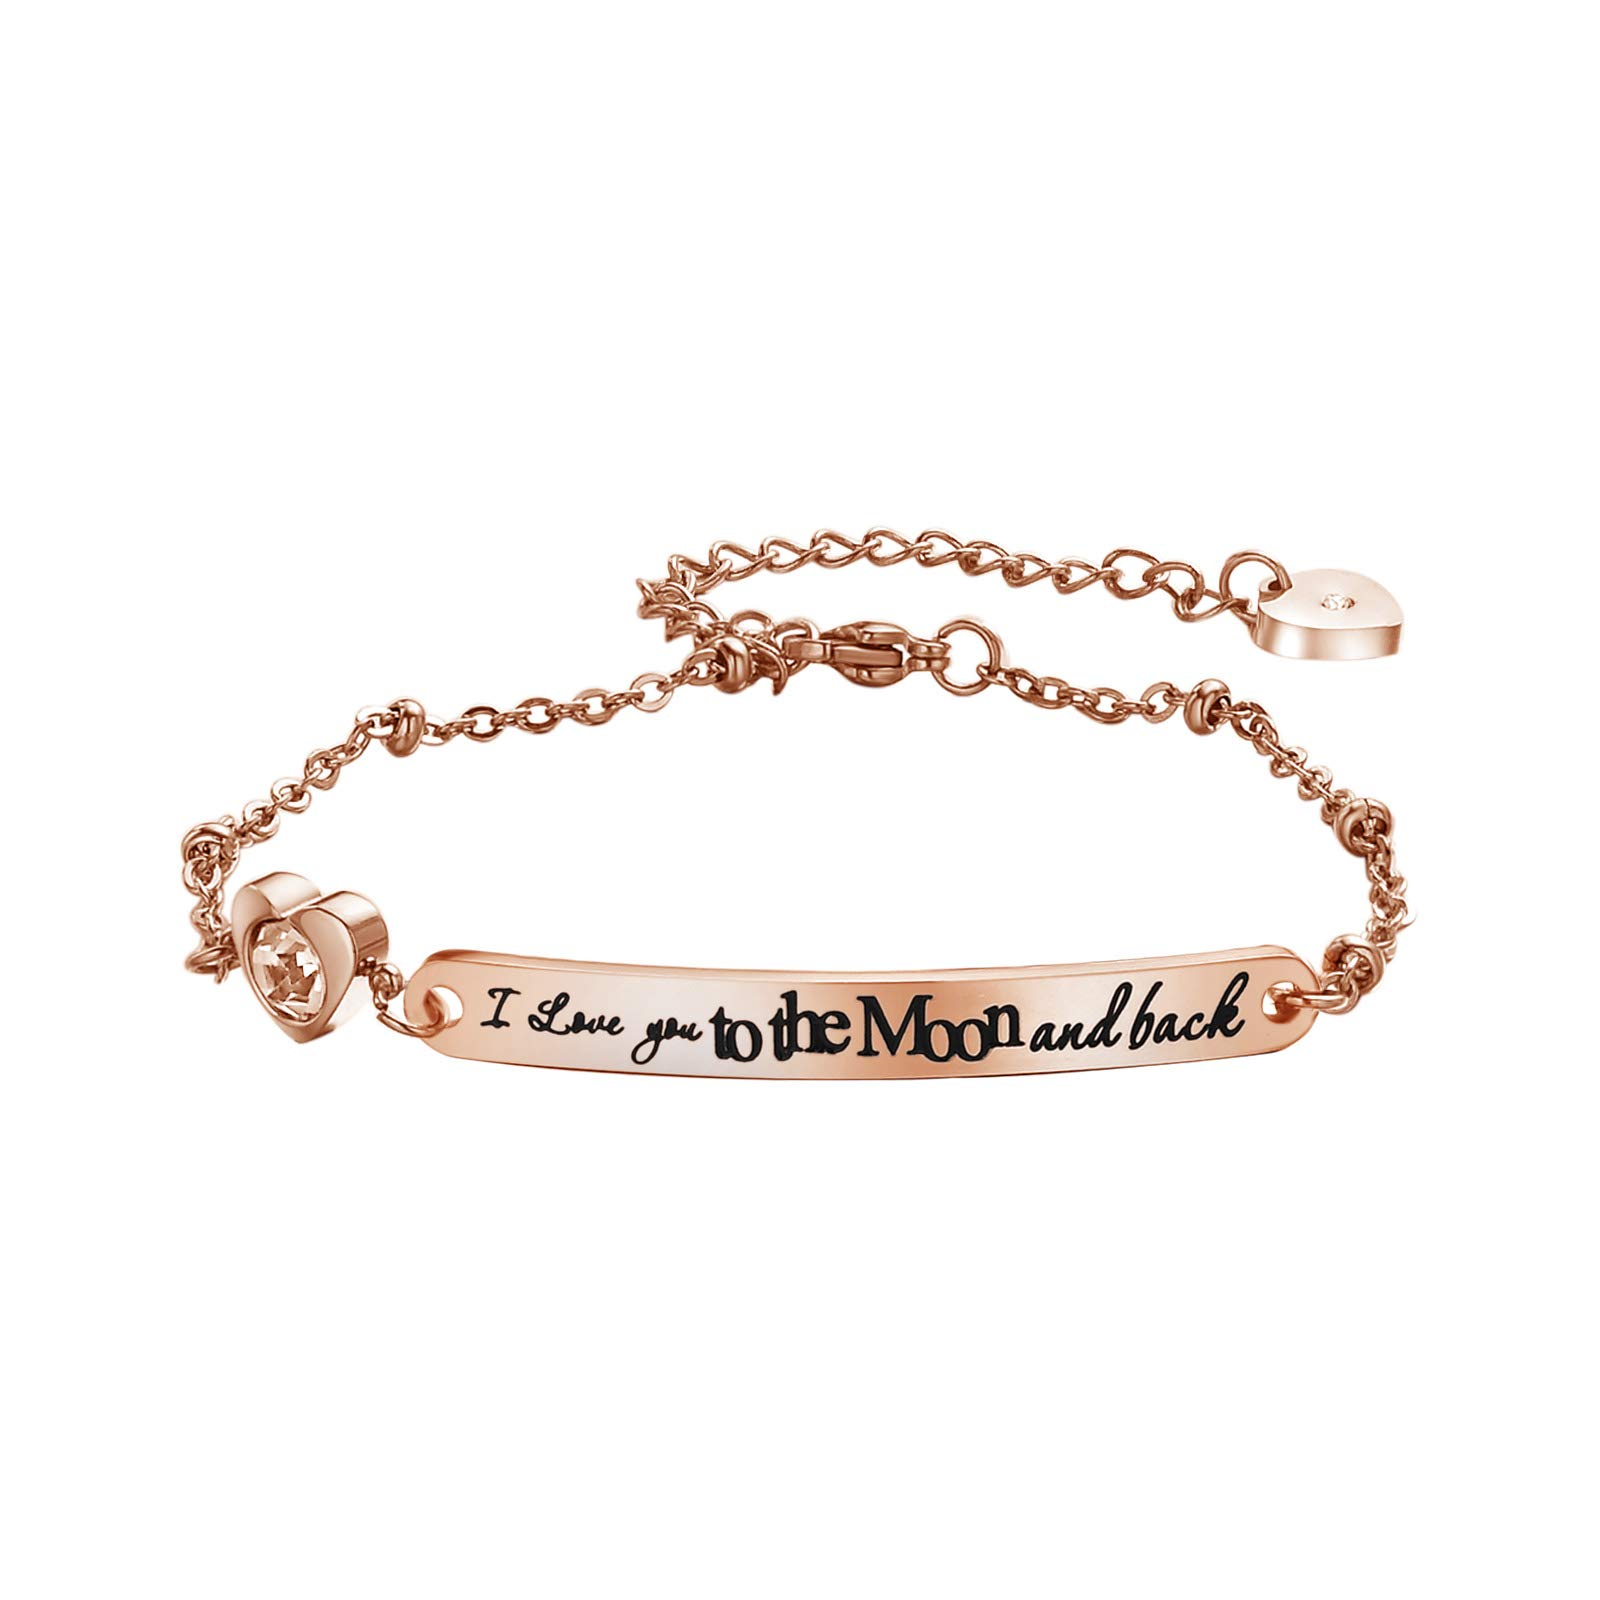 fashion bracelet gifts for mom moon and back bracelet crystal bracelet rose gold jewelry mothers day mom birthday gifts love jewelry engraved bracelet women teen girls christmas n (Moon and back-RG)